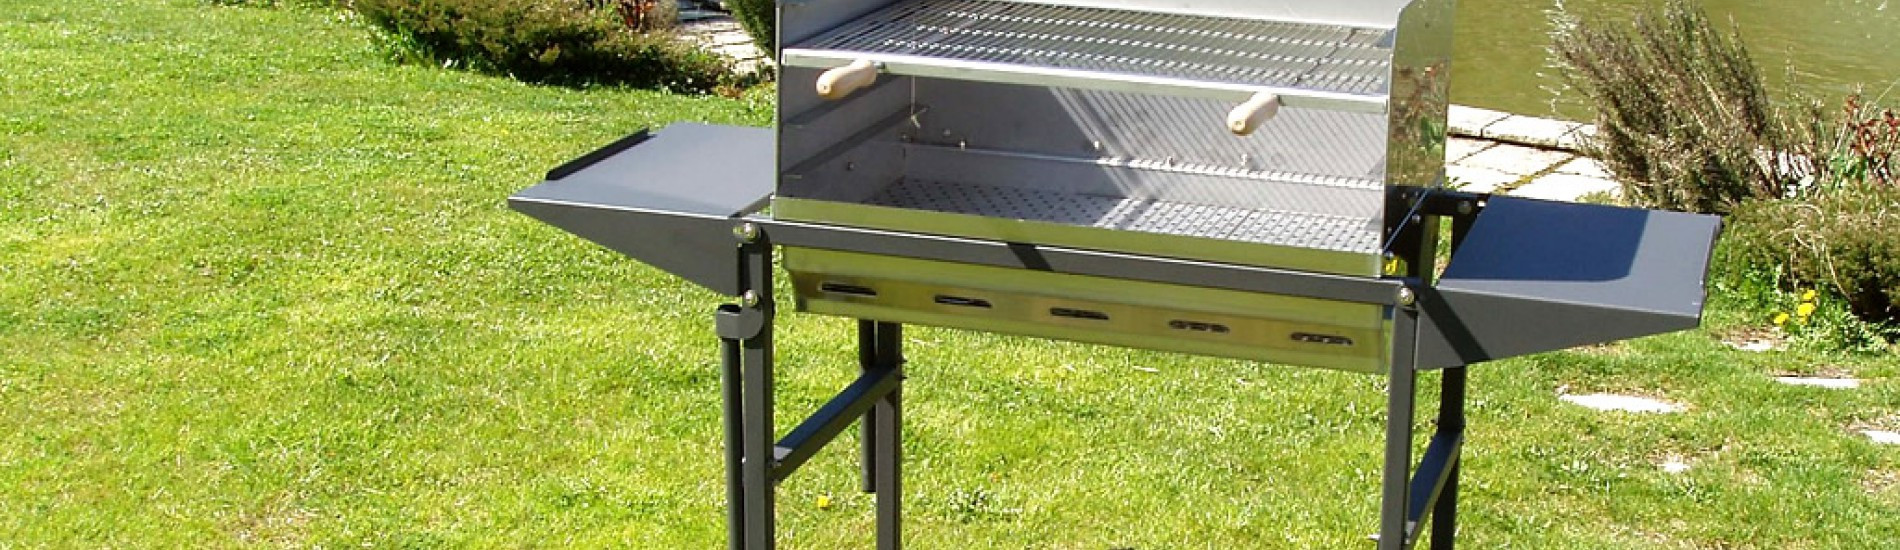 Un barbecue professionale...